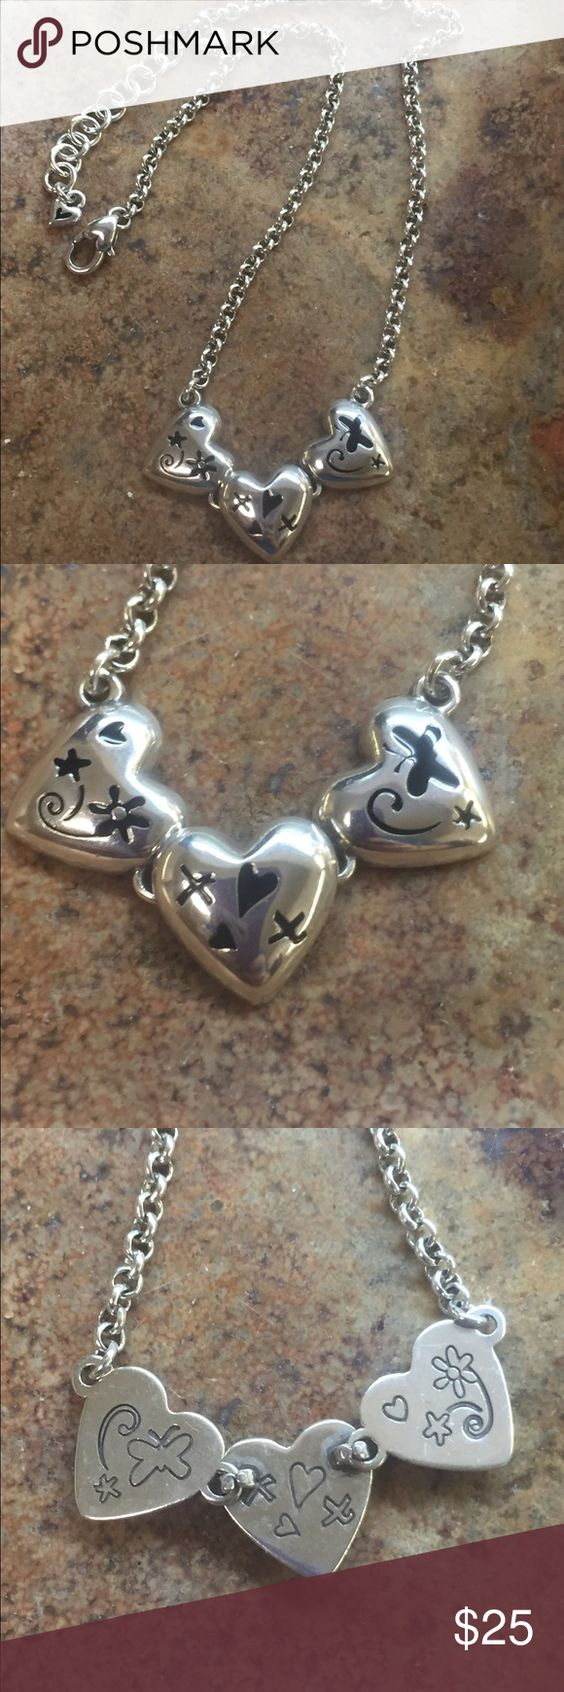 """Brighton three heart necklace 16-18"""" adjustable heart charm necklace. In great pre at owned condition Brighton Jewelry Necklaces"""